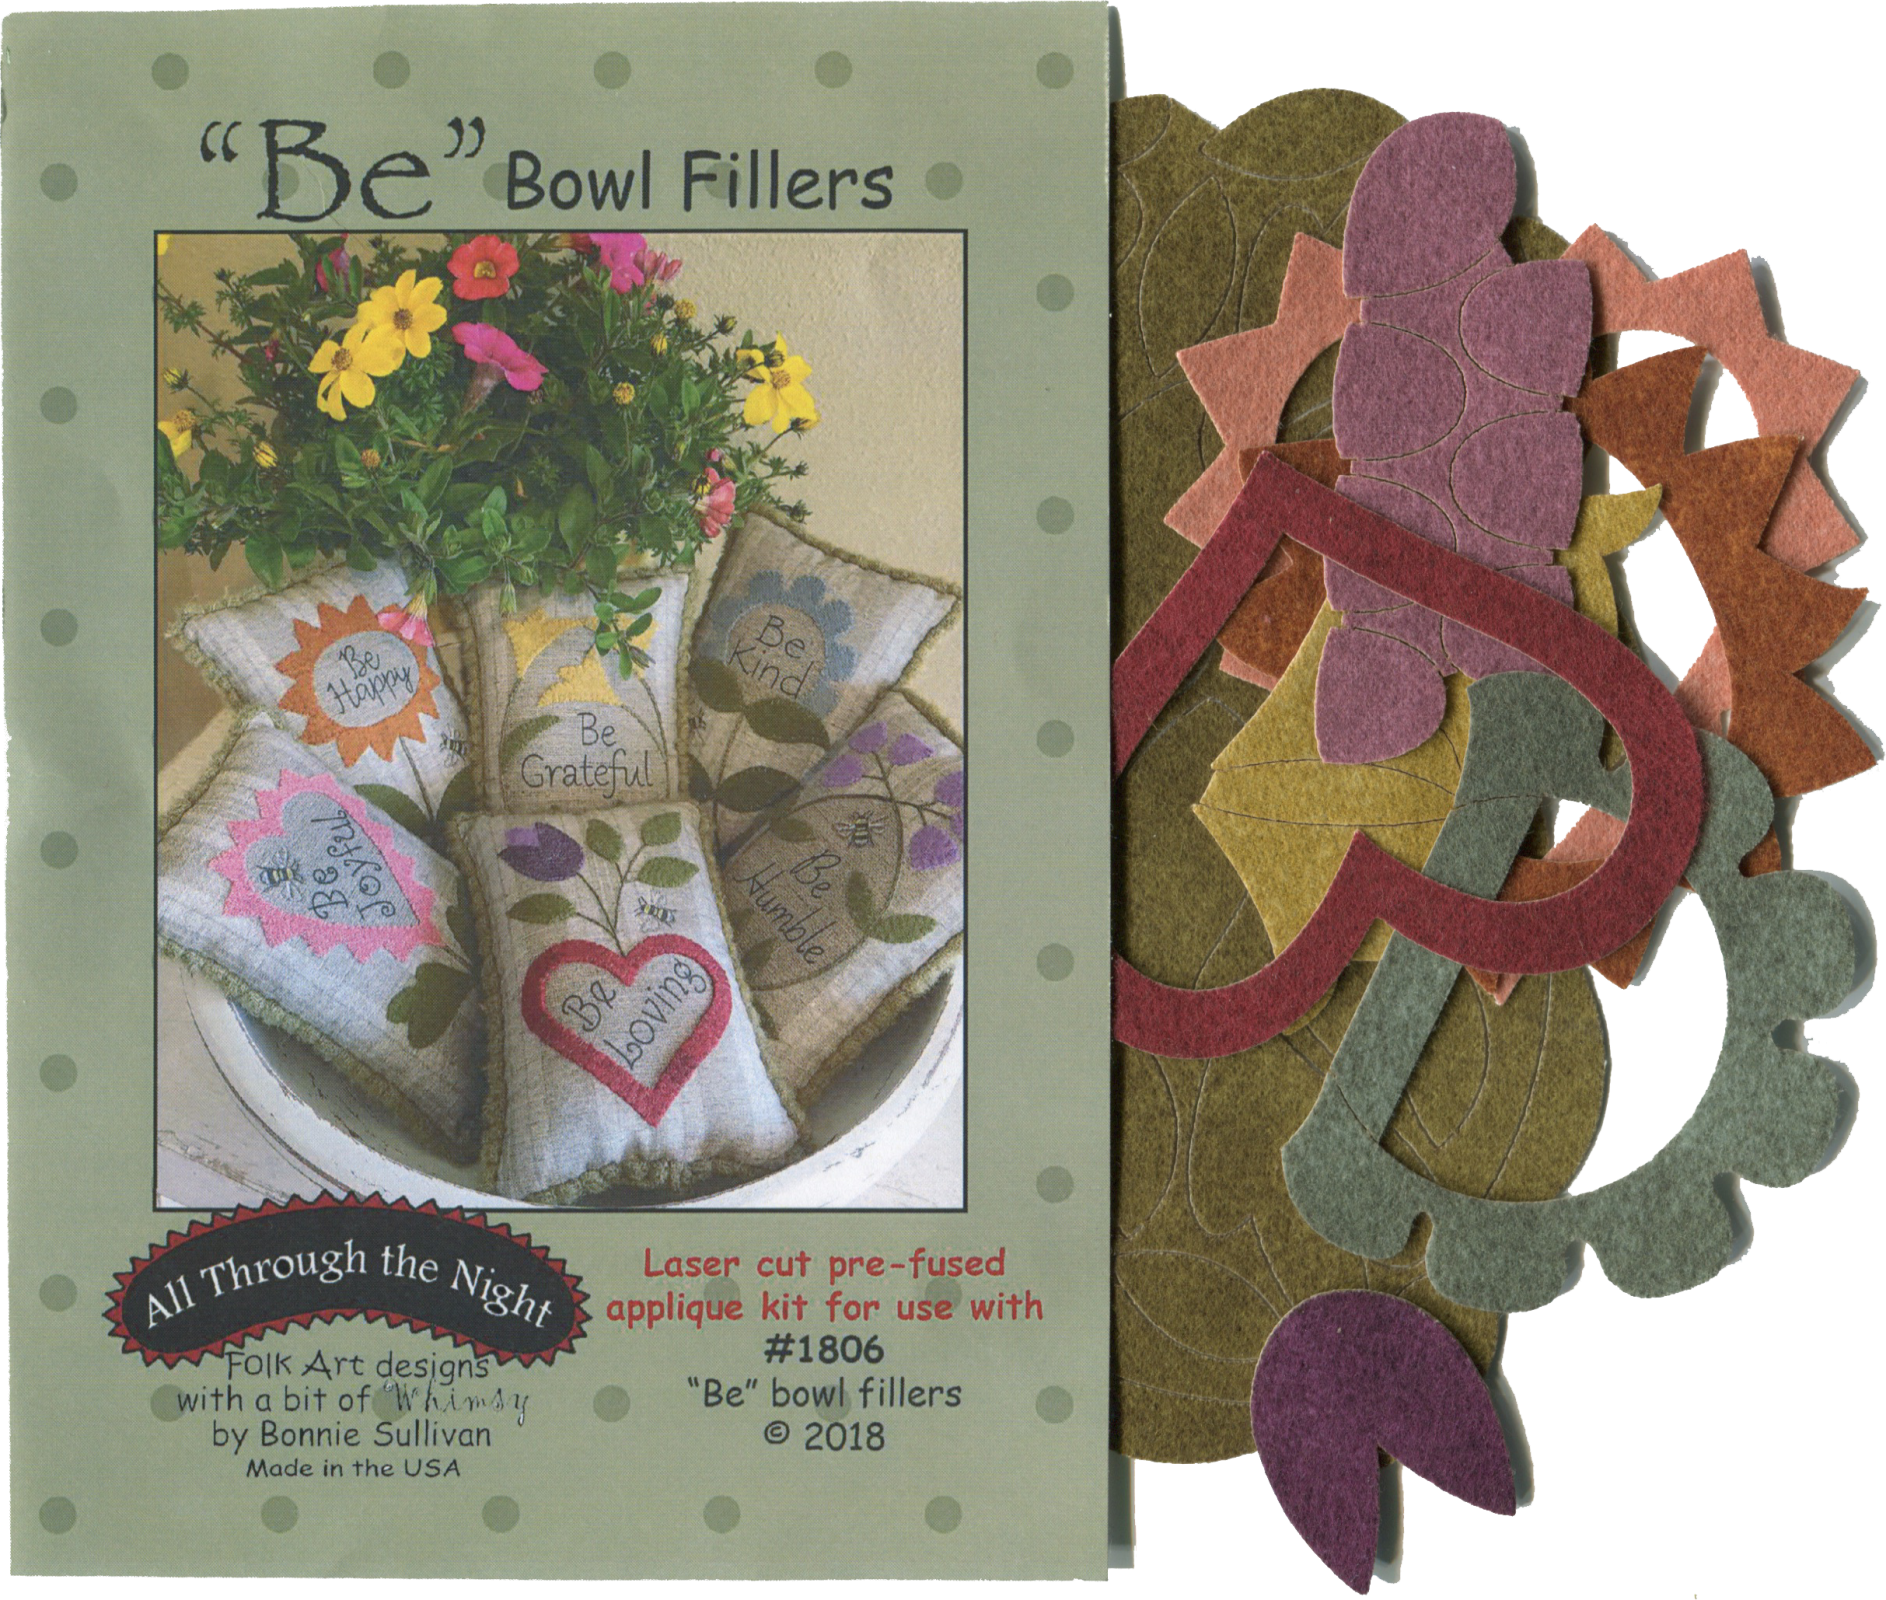 Be Bowl Fillers Applique Kit